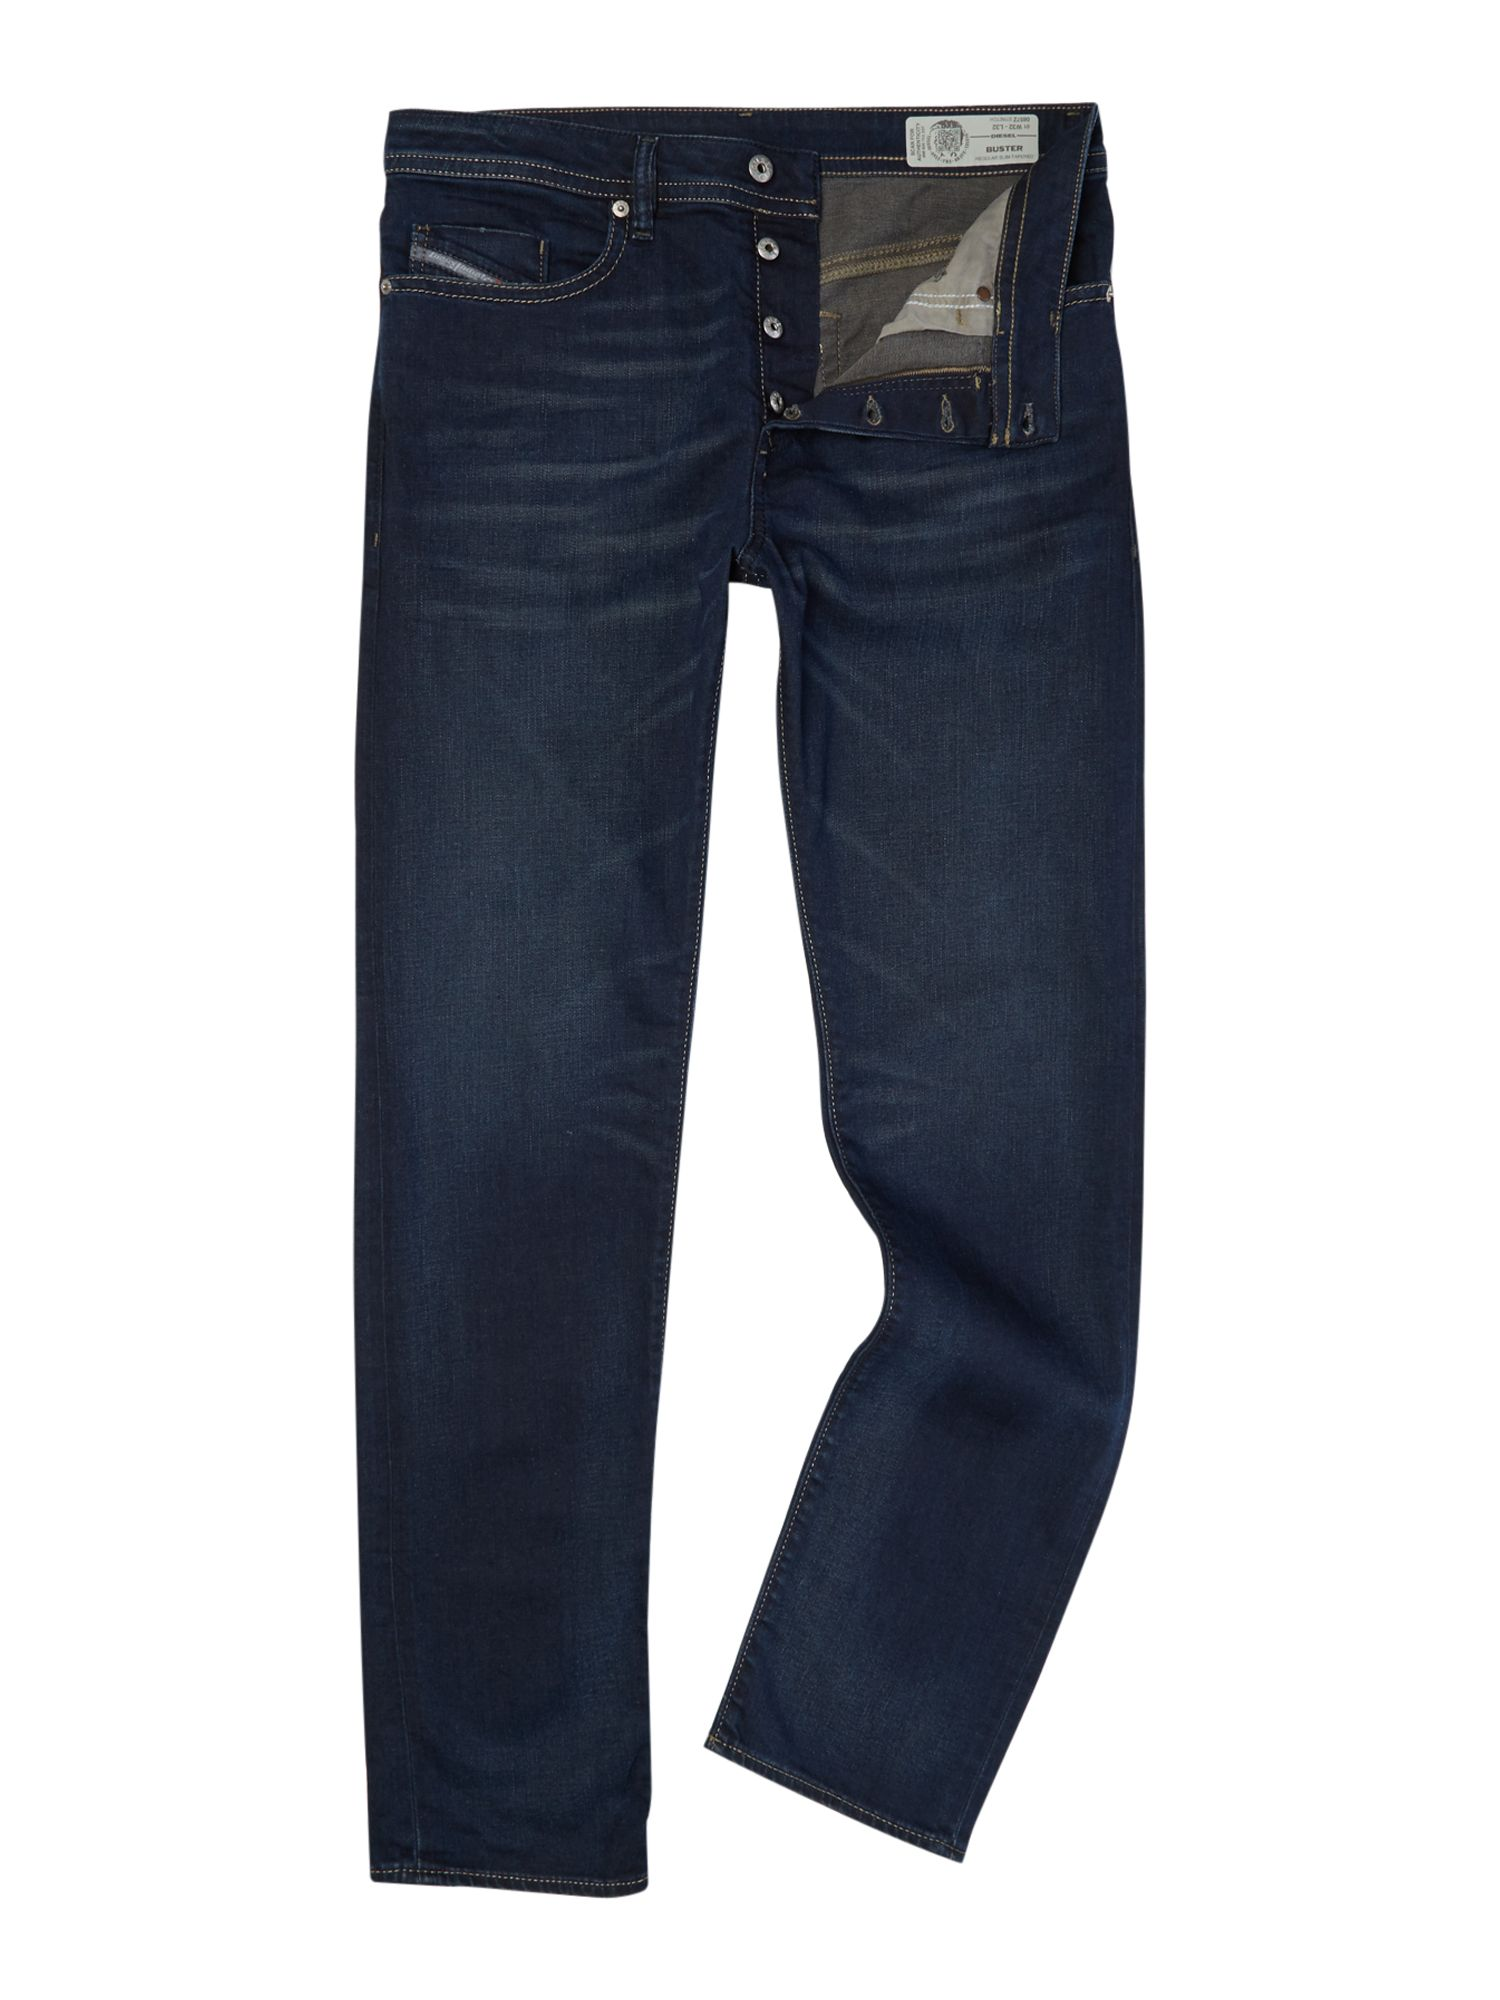 Mens Buster 857z Tapered Fit Jeans, Denim Rinse